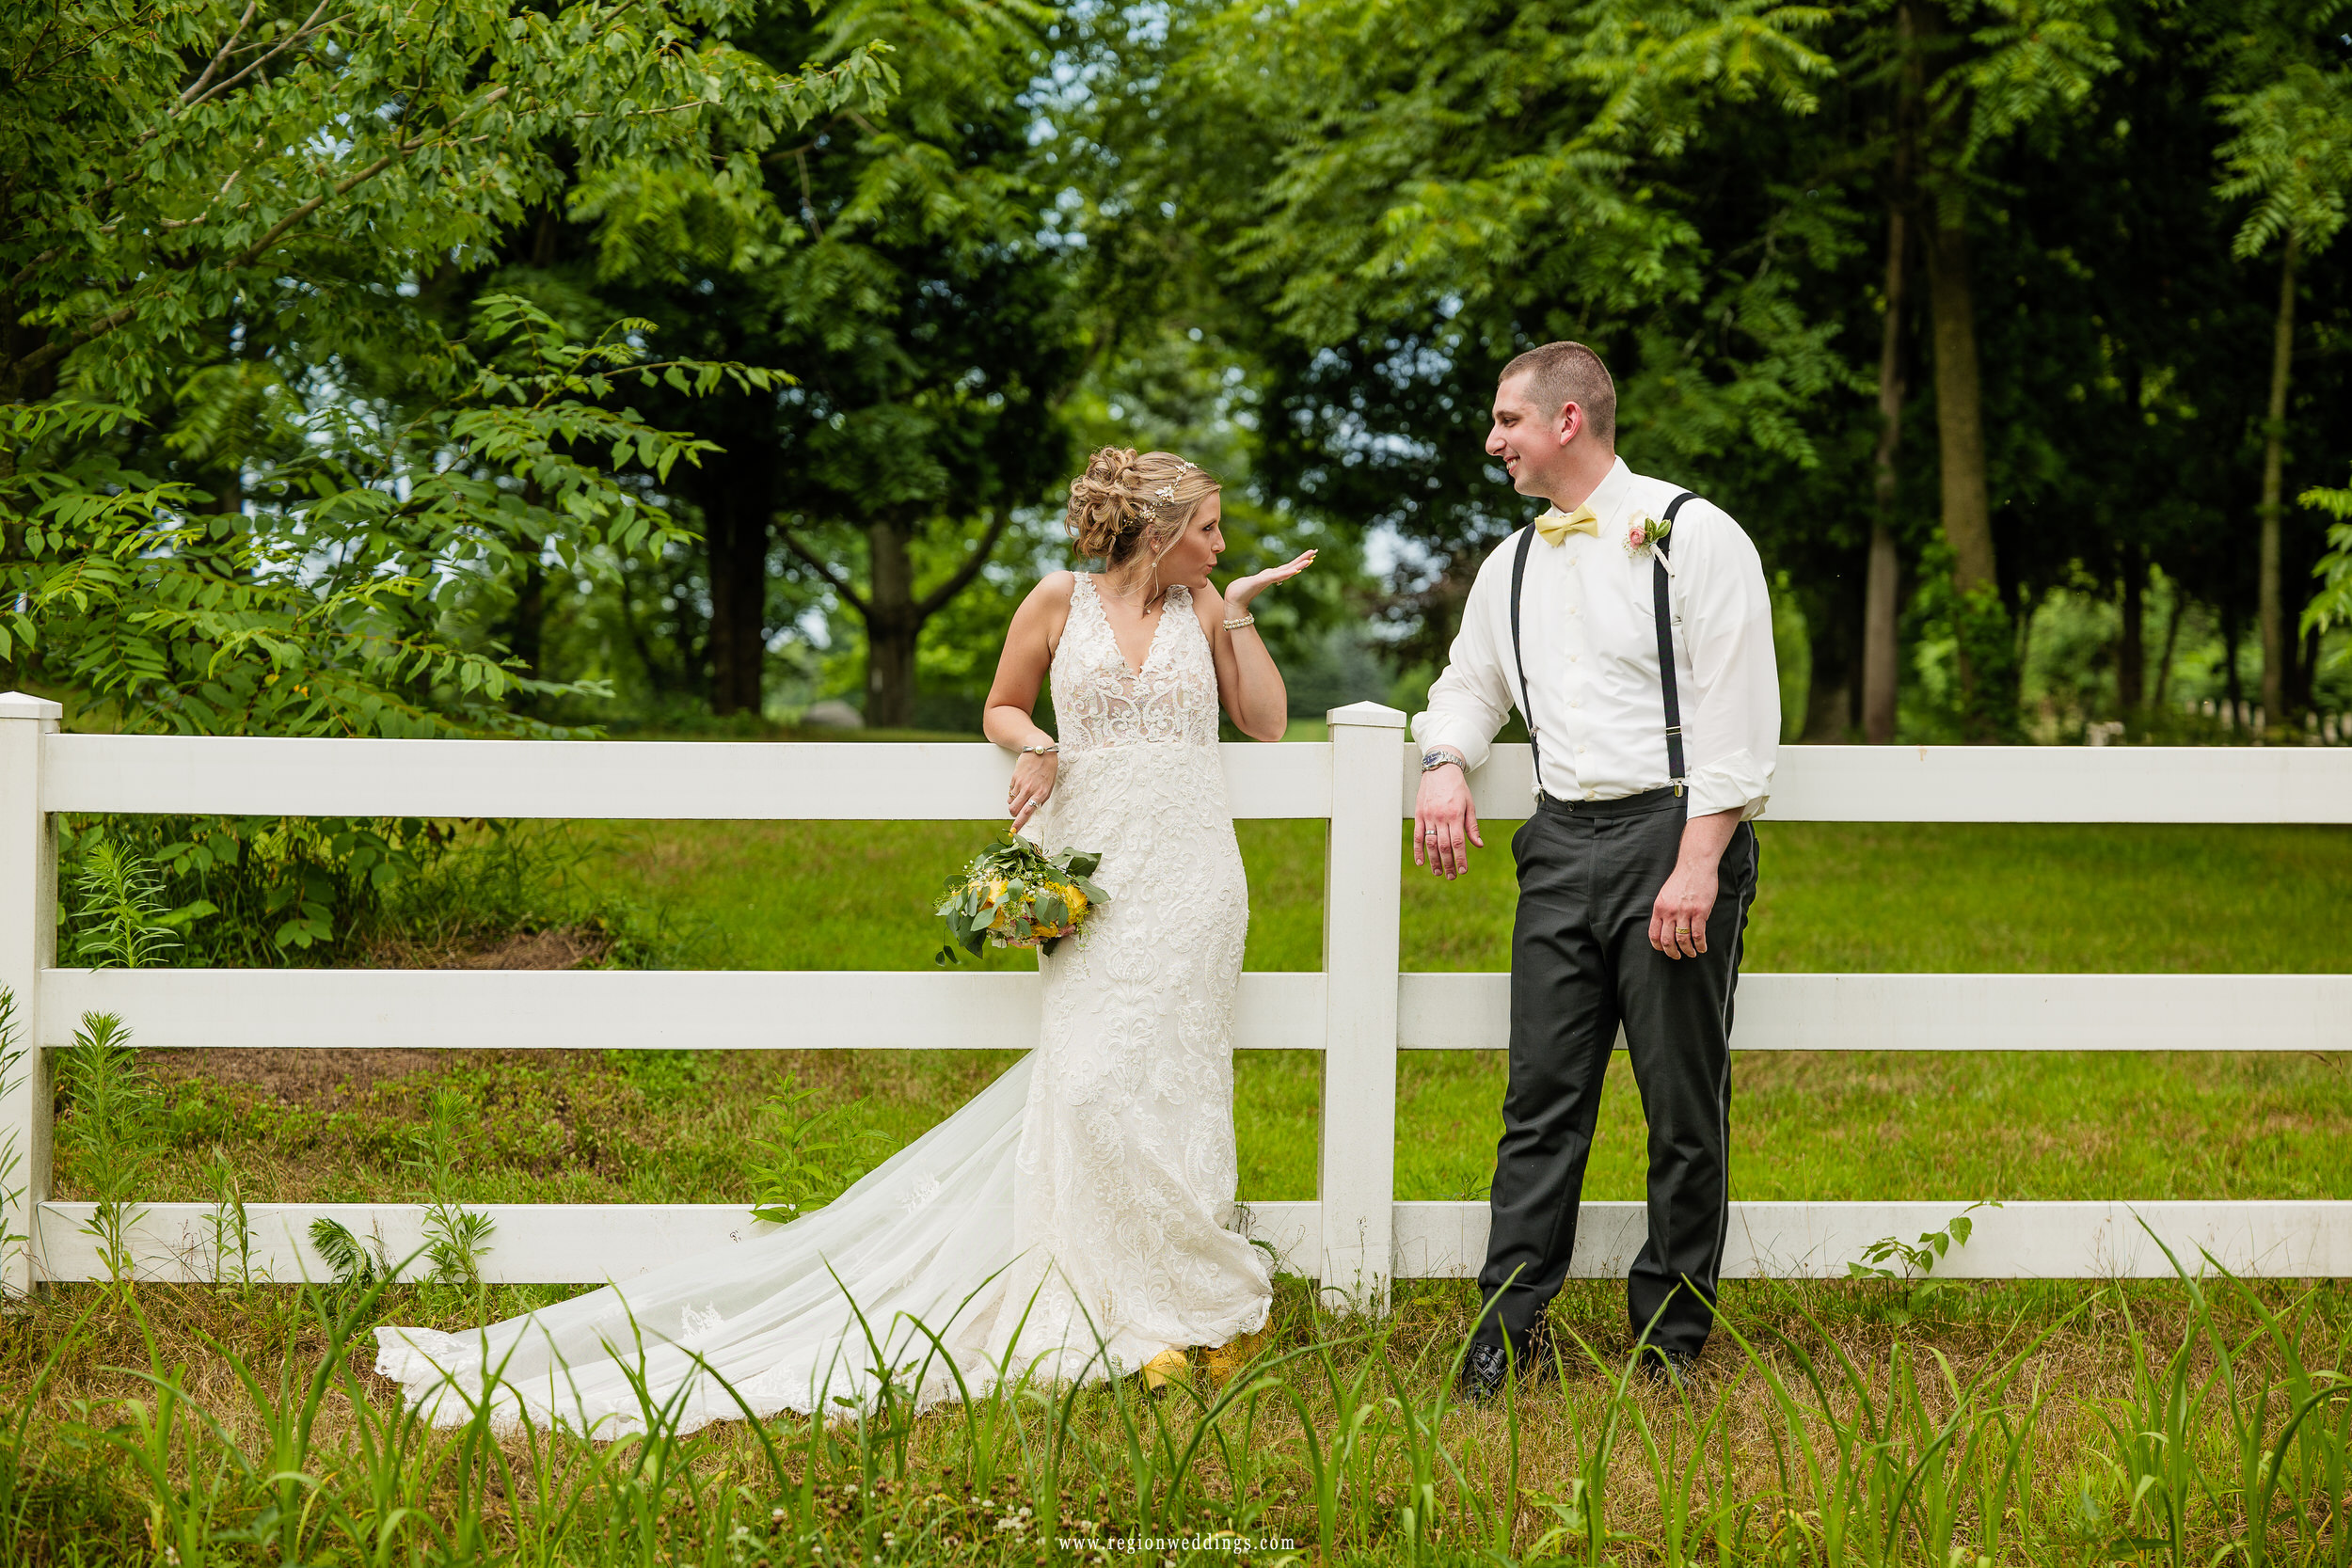 The bride blows kisses toward her new husband as they lean against a white picket fence.